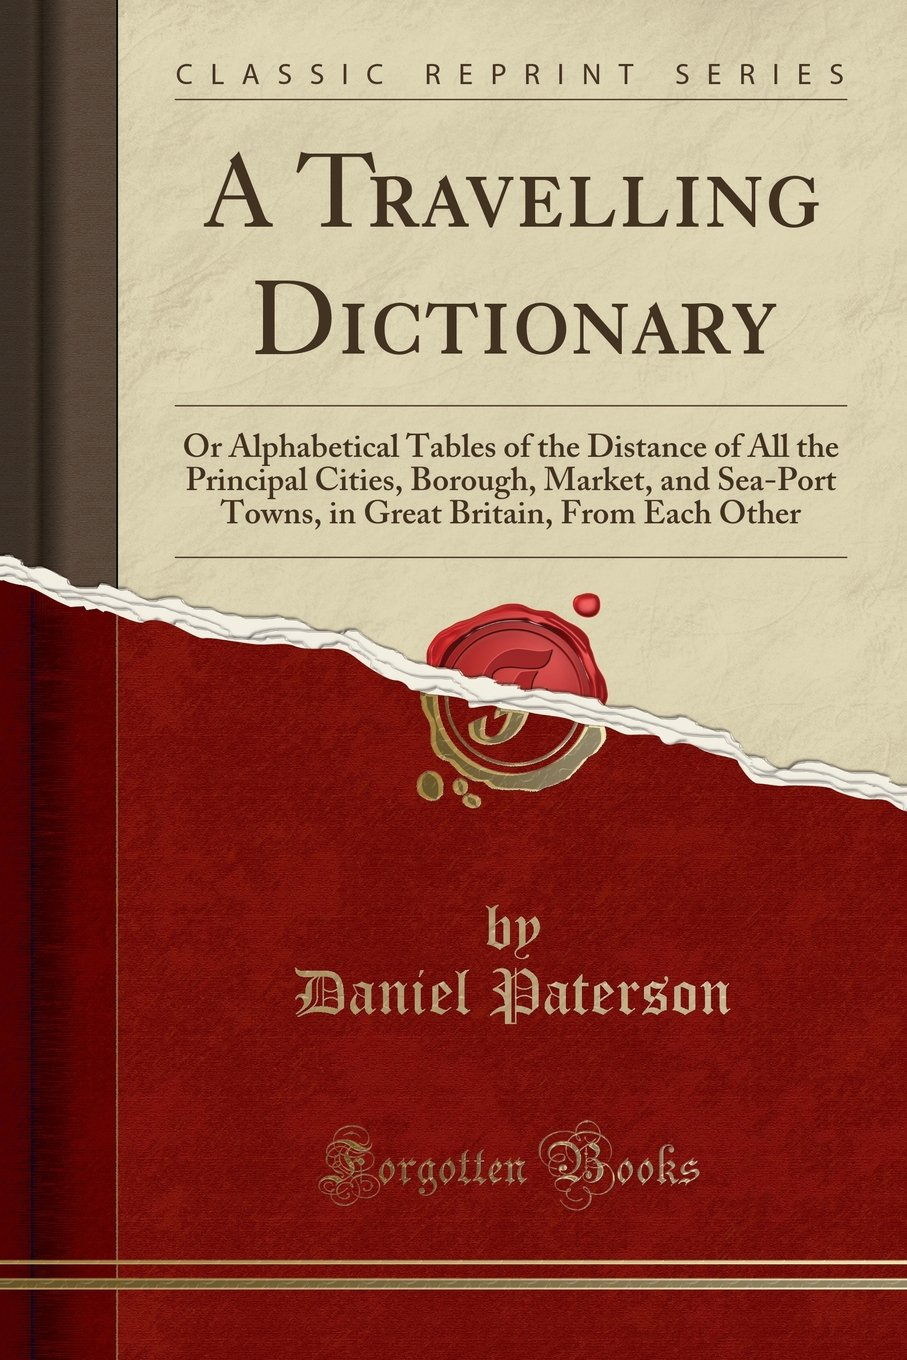 Read Online A Travelling Dictionary: Or Alphabetical Tables of the Distance of All the Principal Cities, Borough, Market, and Sea-Port Towns, in Great Britain, From Each Other (Classic Reprint) pdf epub